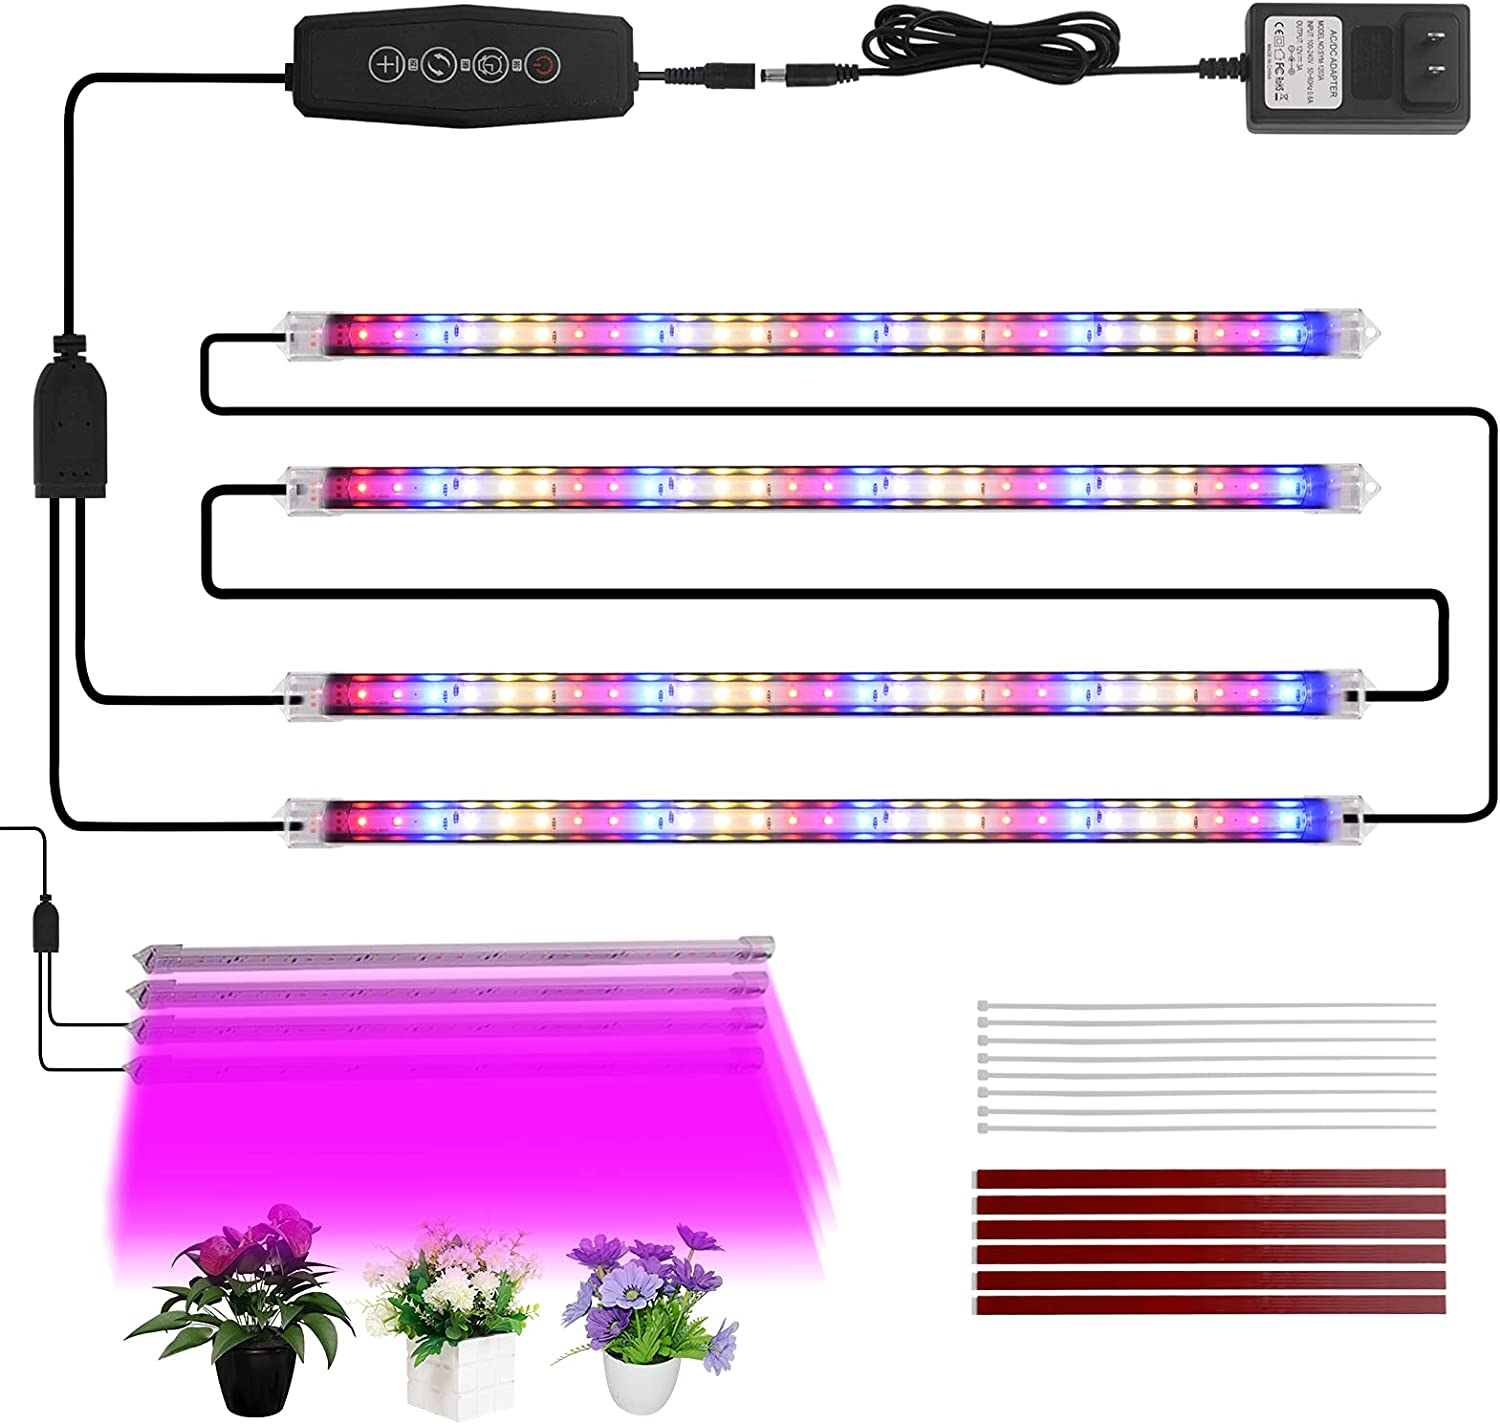 SIKEFIWO 4 LED Grow Lights Strips, 108LEDs Full Spectrum Grow Light with Auto Cycle Timer 3/6/12 H, Plant Grow Lights for Indoor Plants,6 Dimmable Levels LED Grow Lights for Garden Seeding Hydroponics